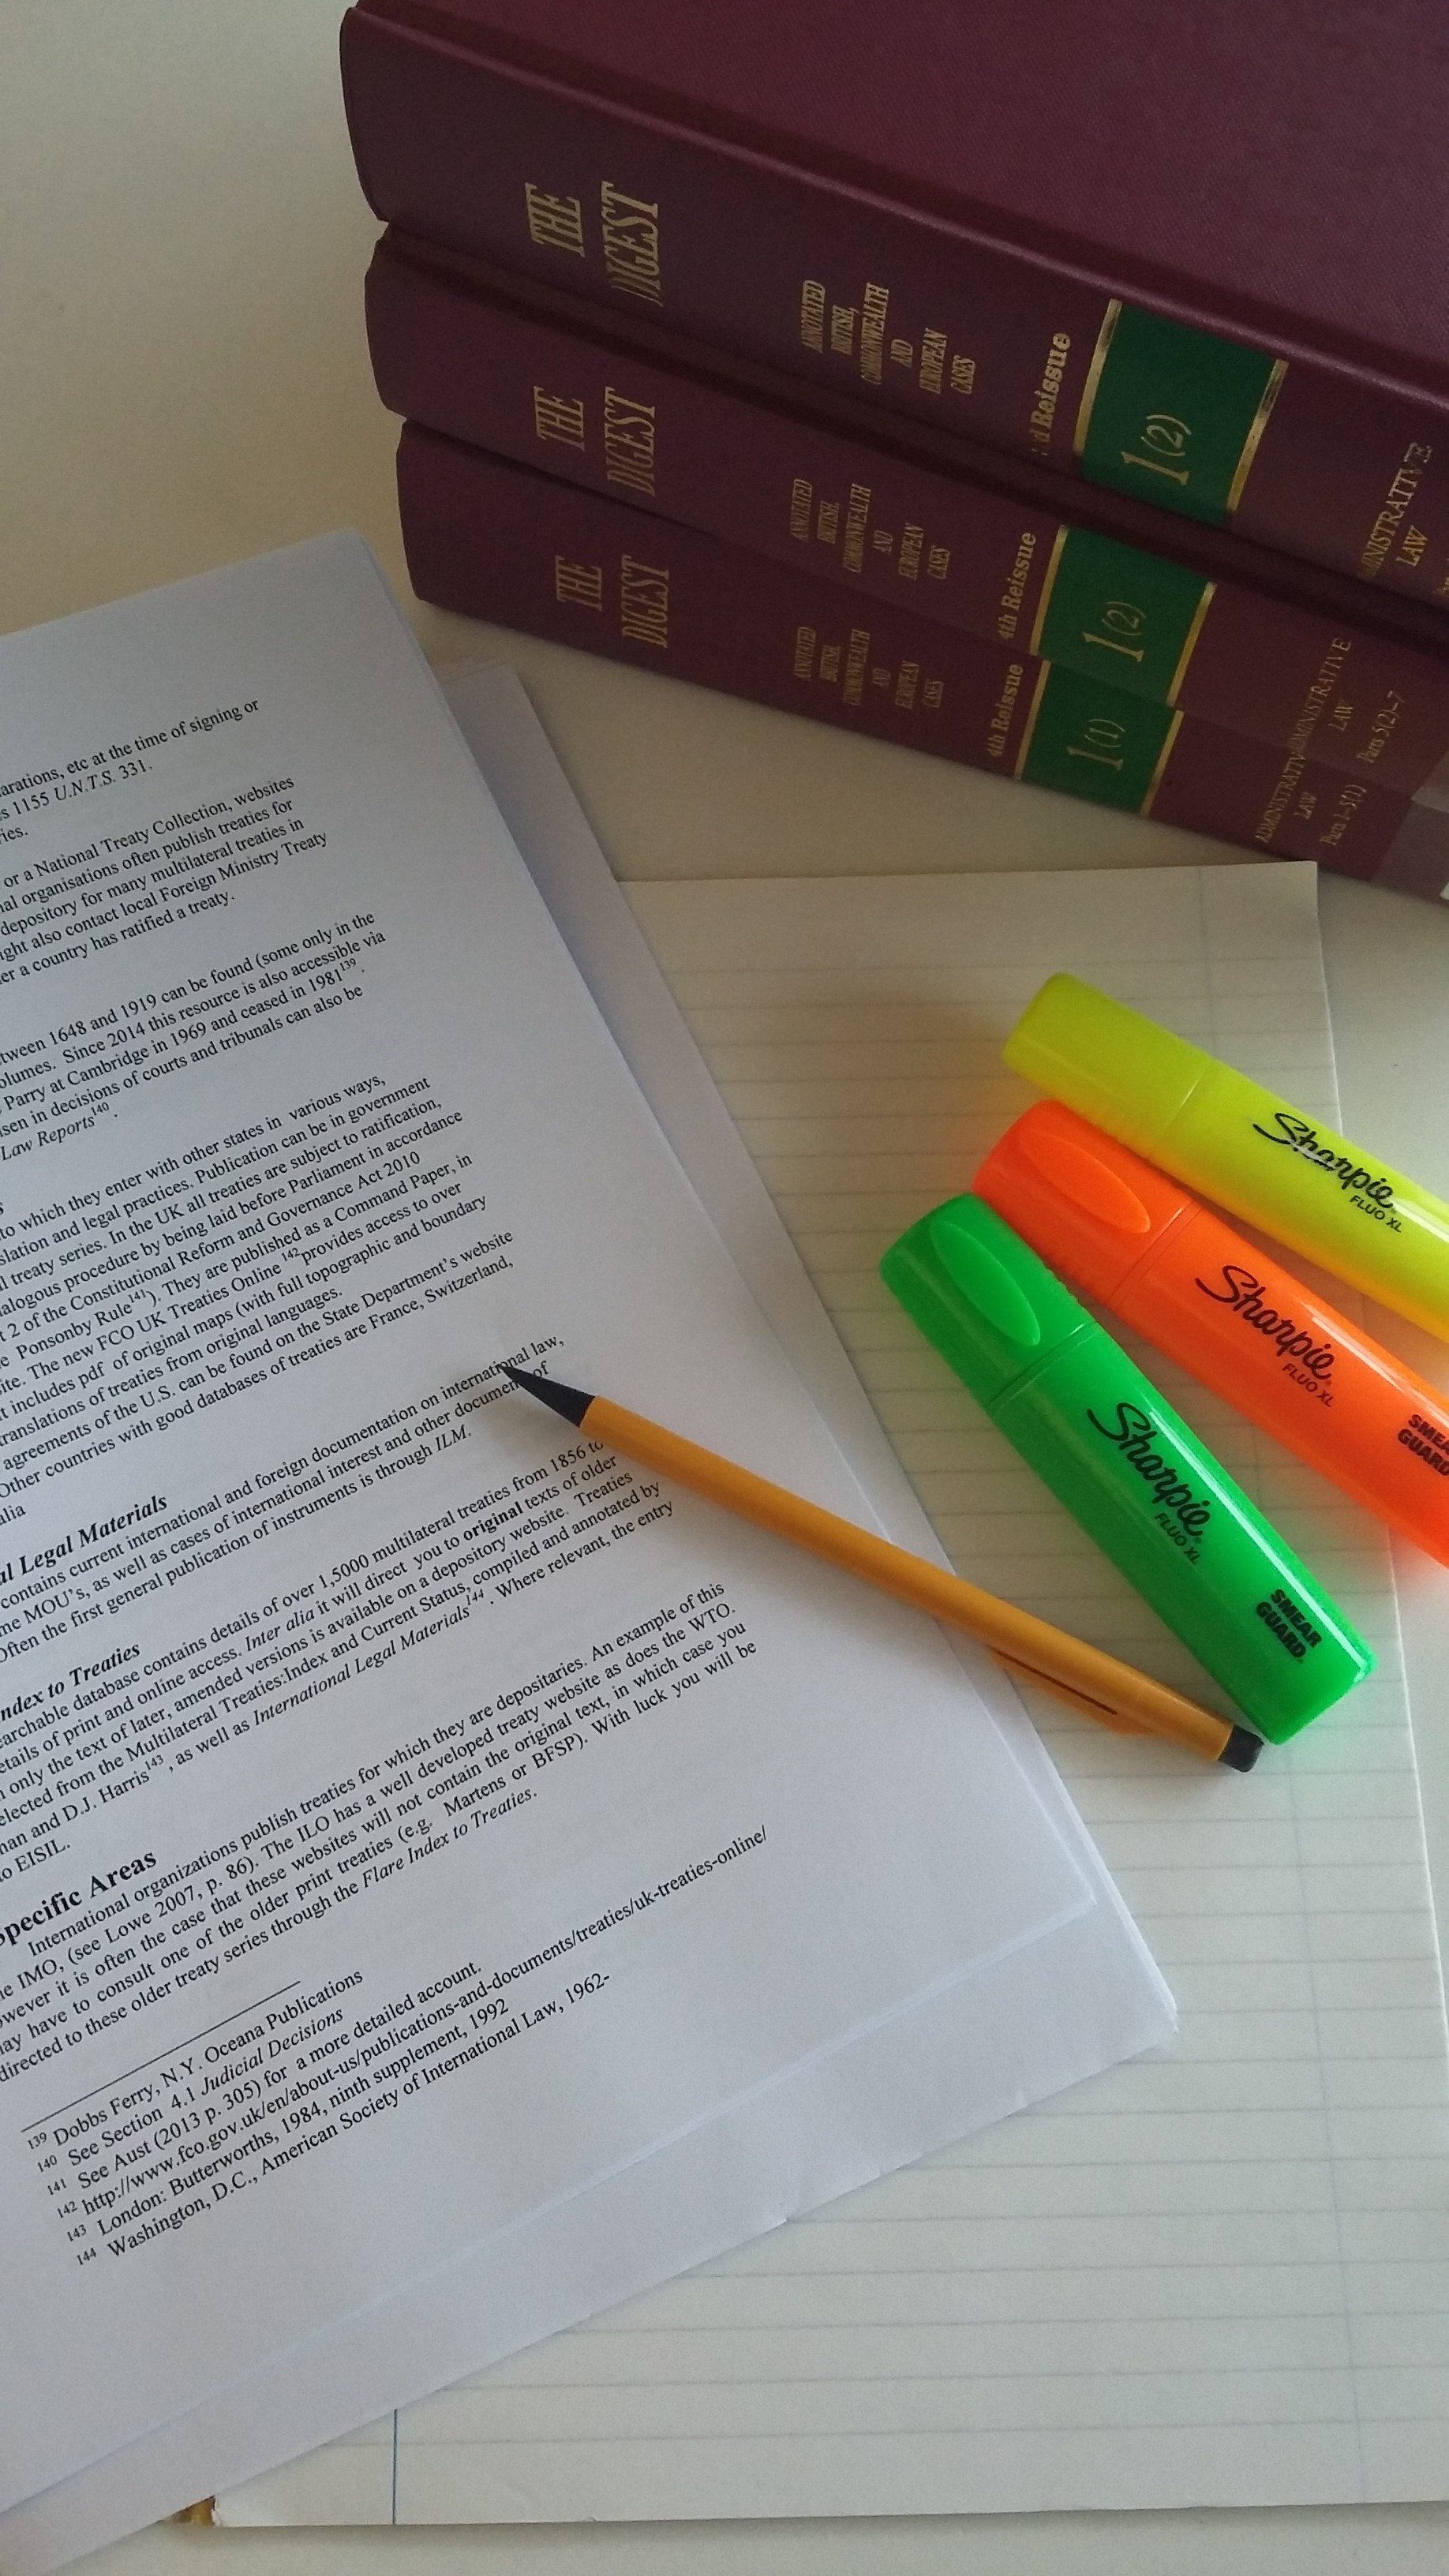 An image of studying - a page of text, highlighter pens and books.